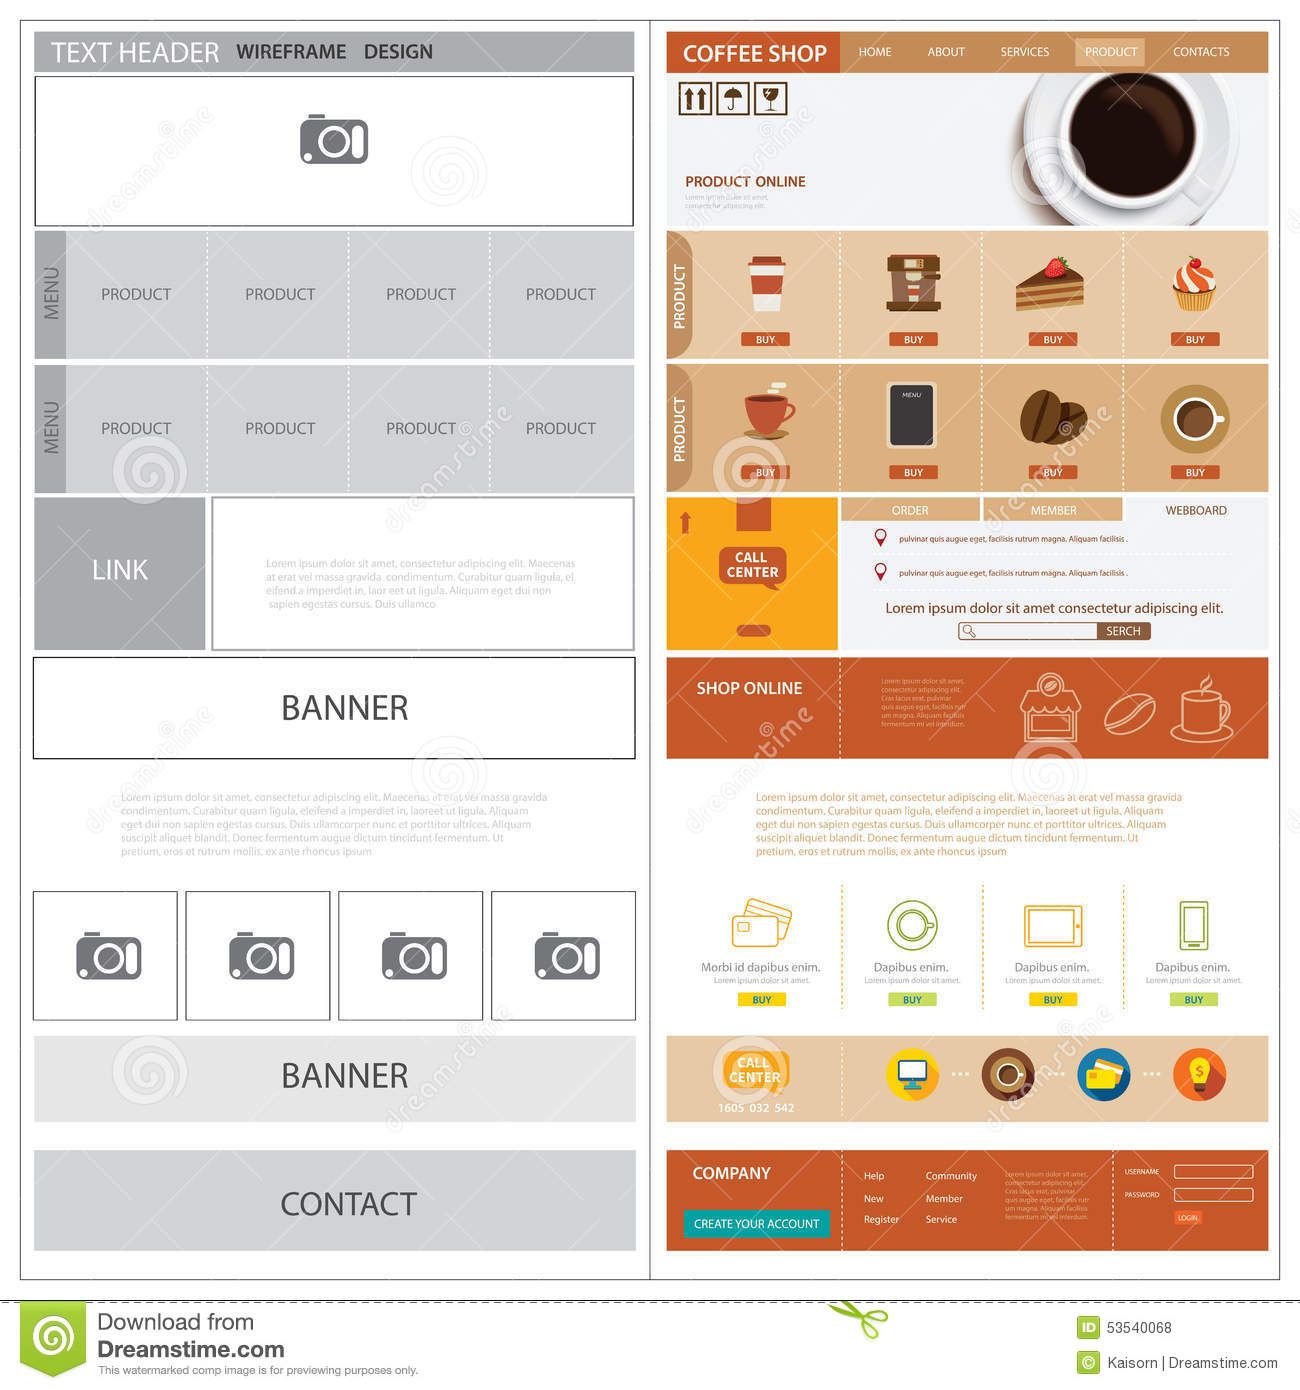 Website Wireframe Template And Mock Up Stock Vector - Image: 53540068